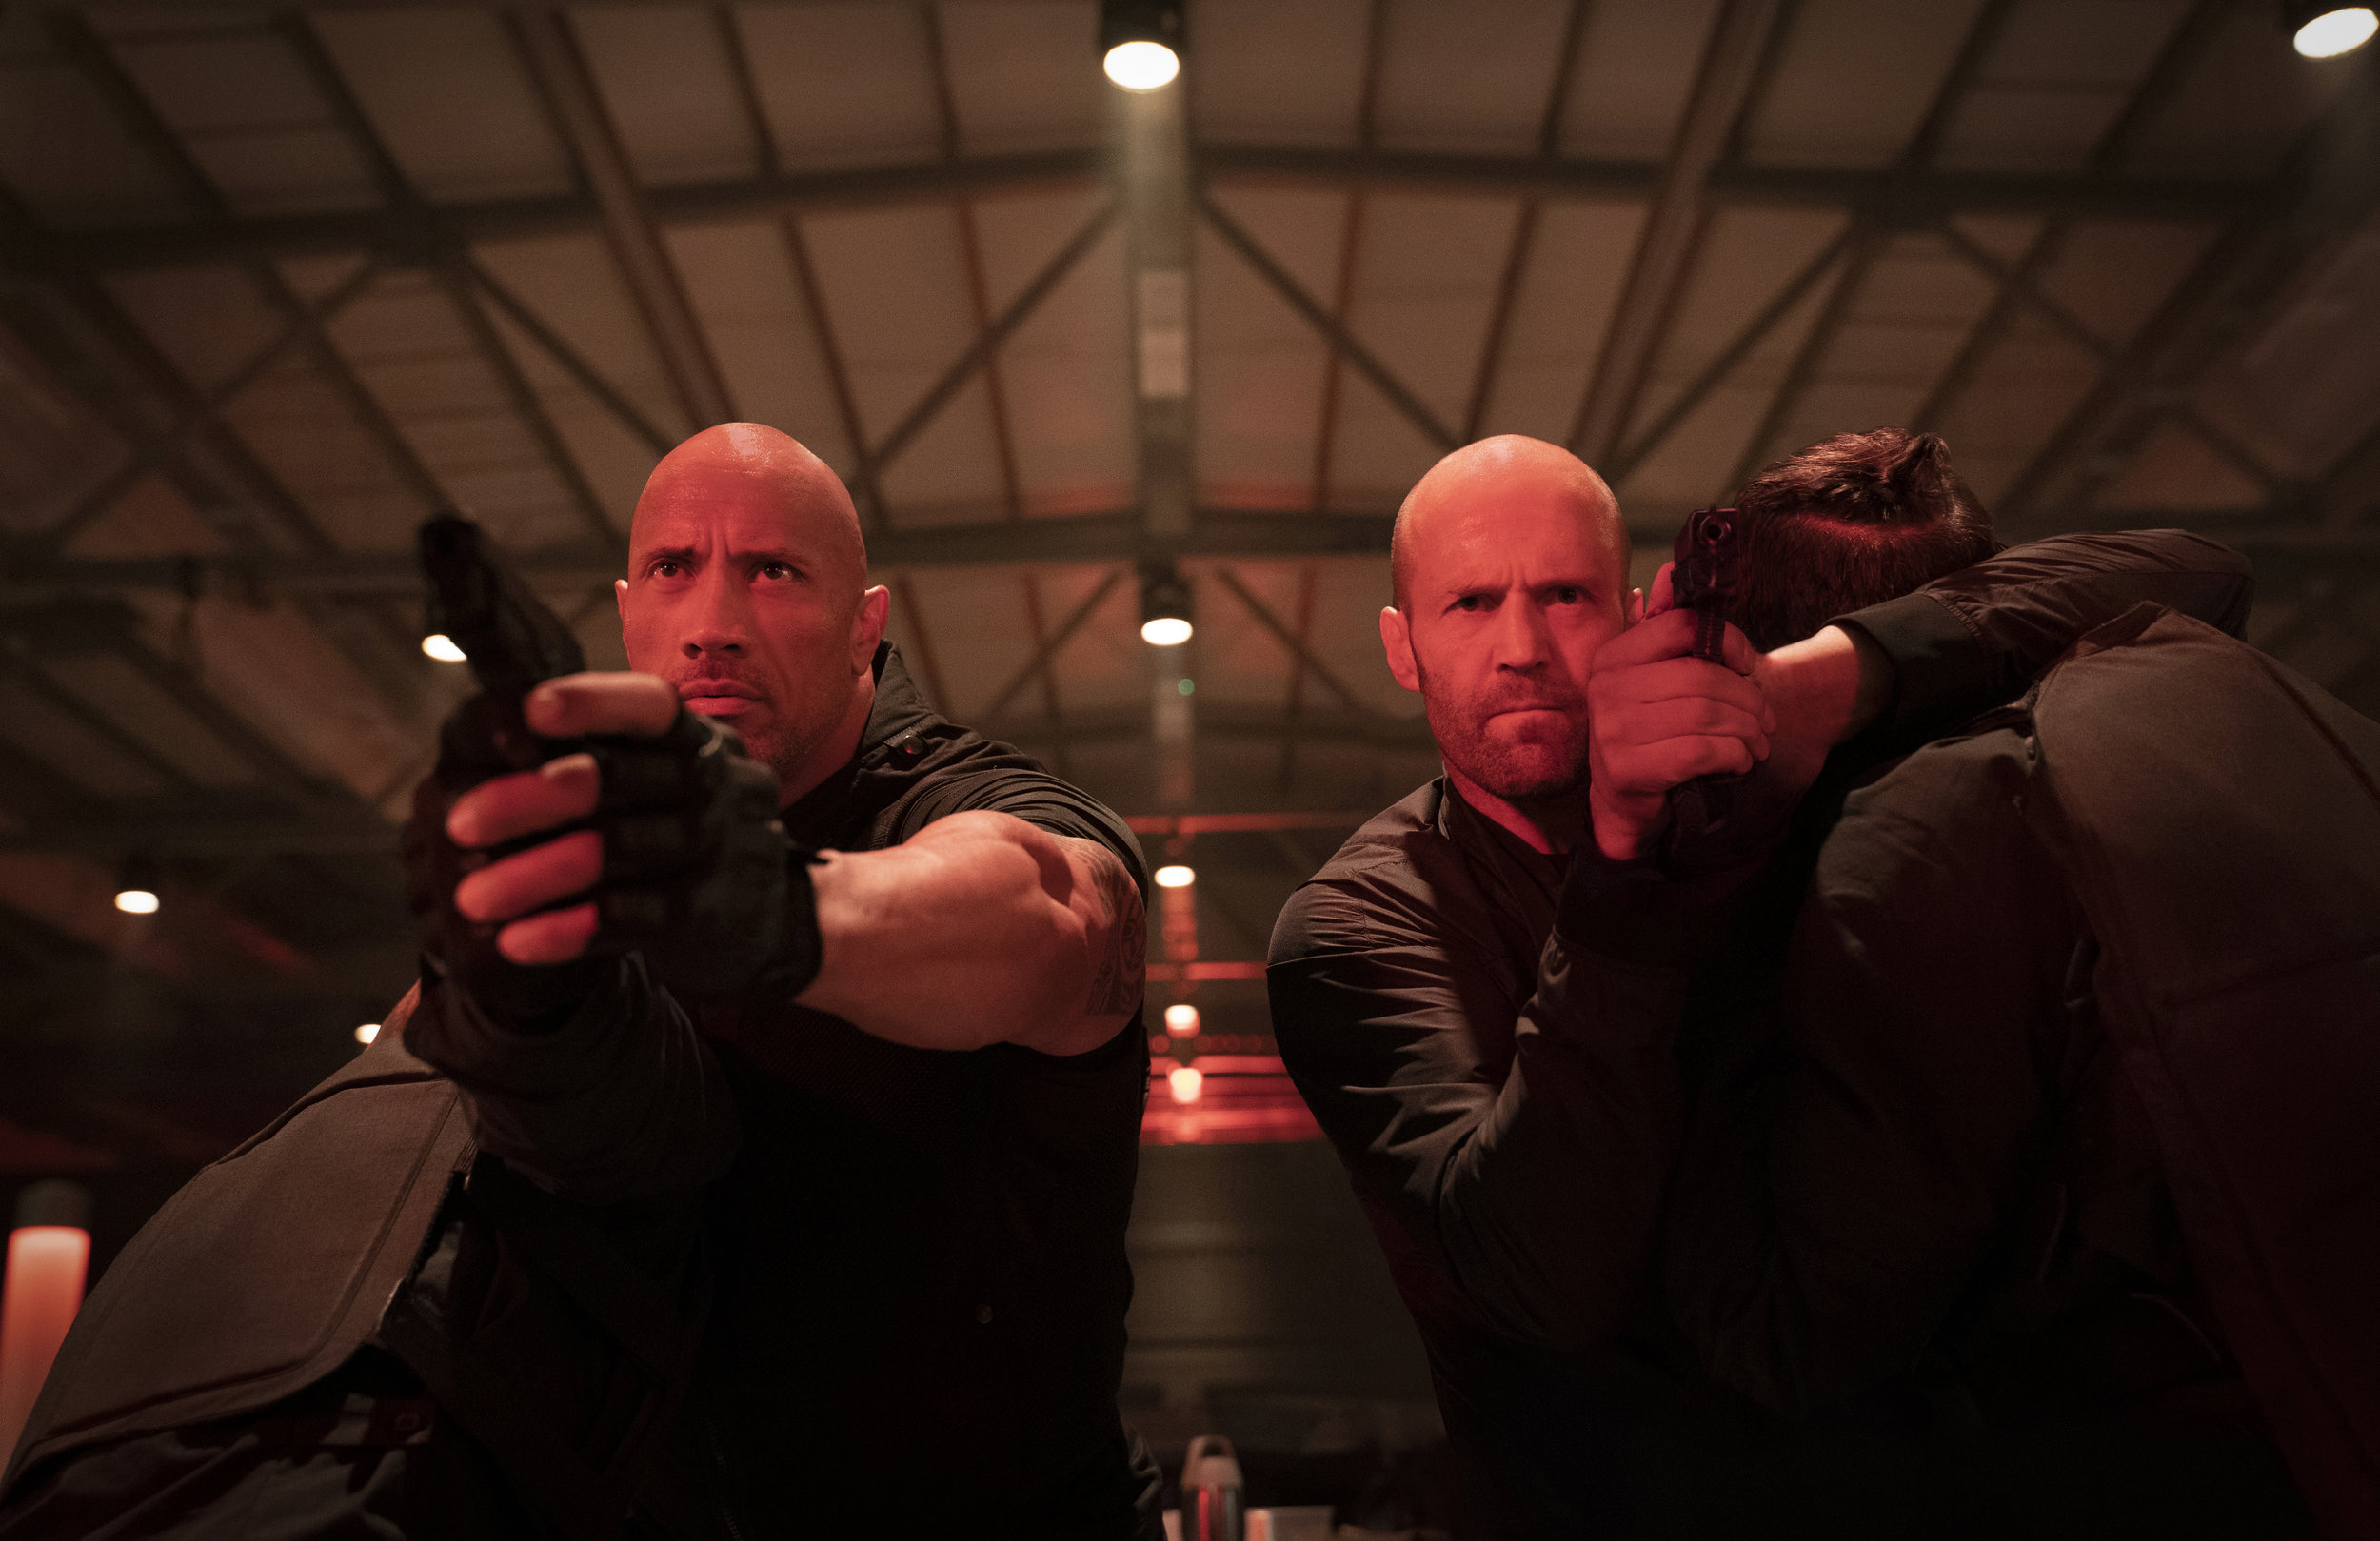 """Luke Hobbs (Dwayne Johnson, left) and Deckard Shaw (Jason Statham) face a small army of gunmen in a scene from """"Fast & Furious Presents: Hobbs & Shaw."""" (Photo by Daniel Smith, courtesy of Universal Pictures.)"""